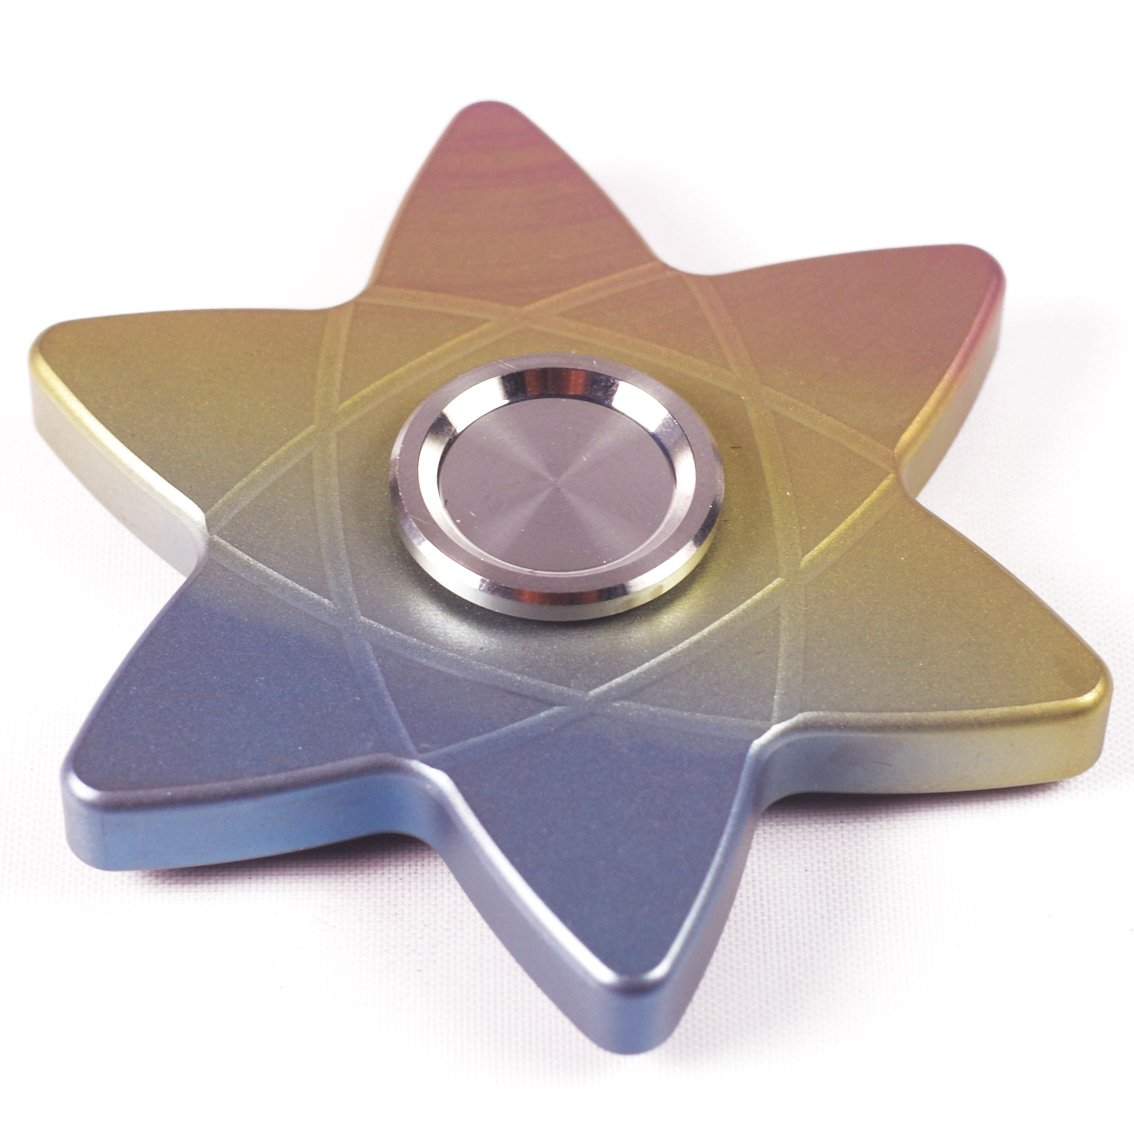 FREELOVE Rainbow Whirlwind Fidget Spinner,Titanium Alloy,Stainless Steel Finger Cover with British Tungsten Steel Beads R188 Bearing,No Edges/Corners No Hurt,Precise EDC Toy (Hexagonal Rainbow) by FREELOVE (Image #1)